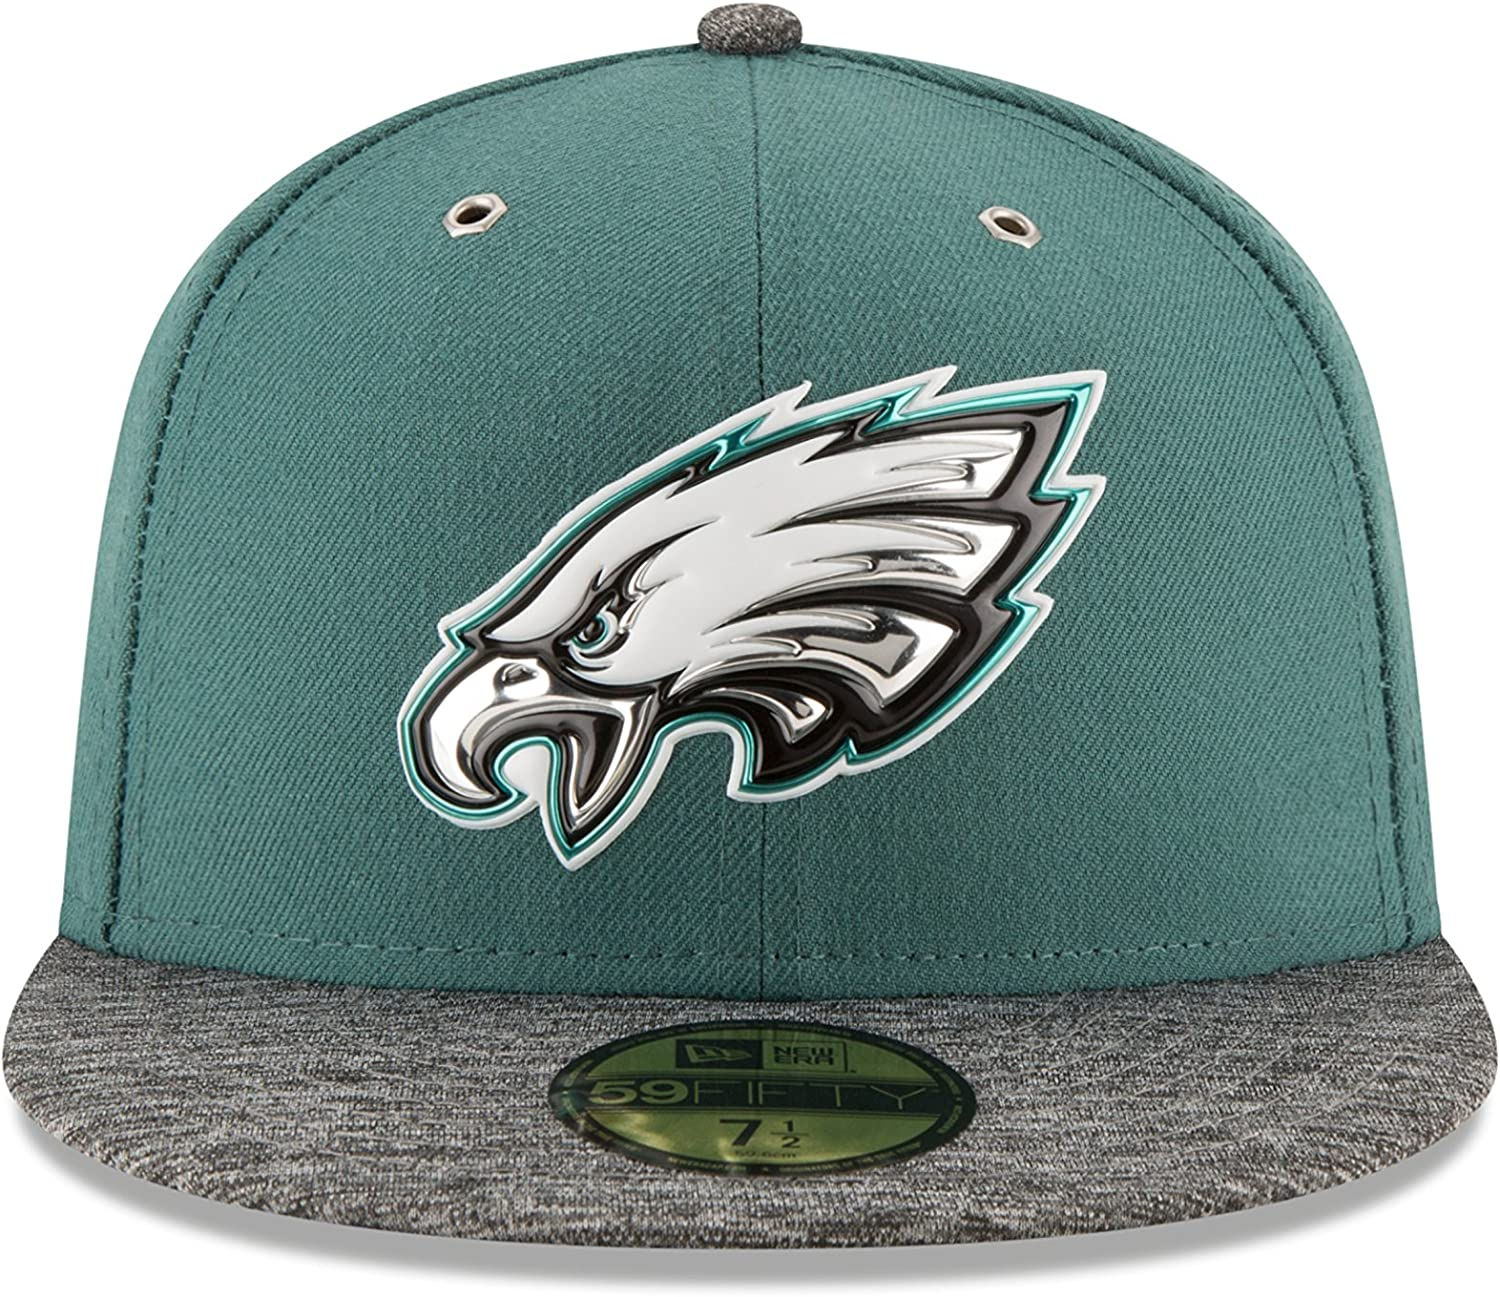 New Era NFL 2016 Draft 59FIFTY Fitted Cap